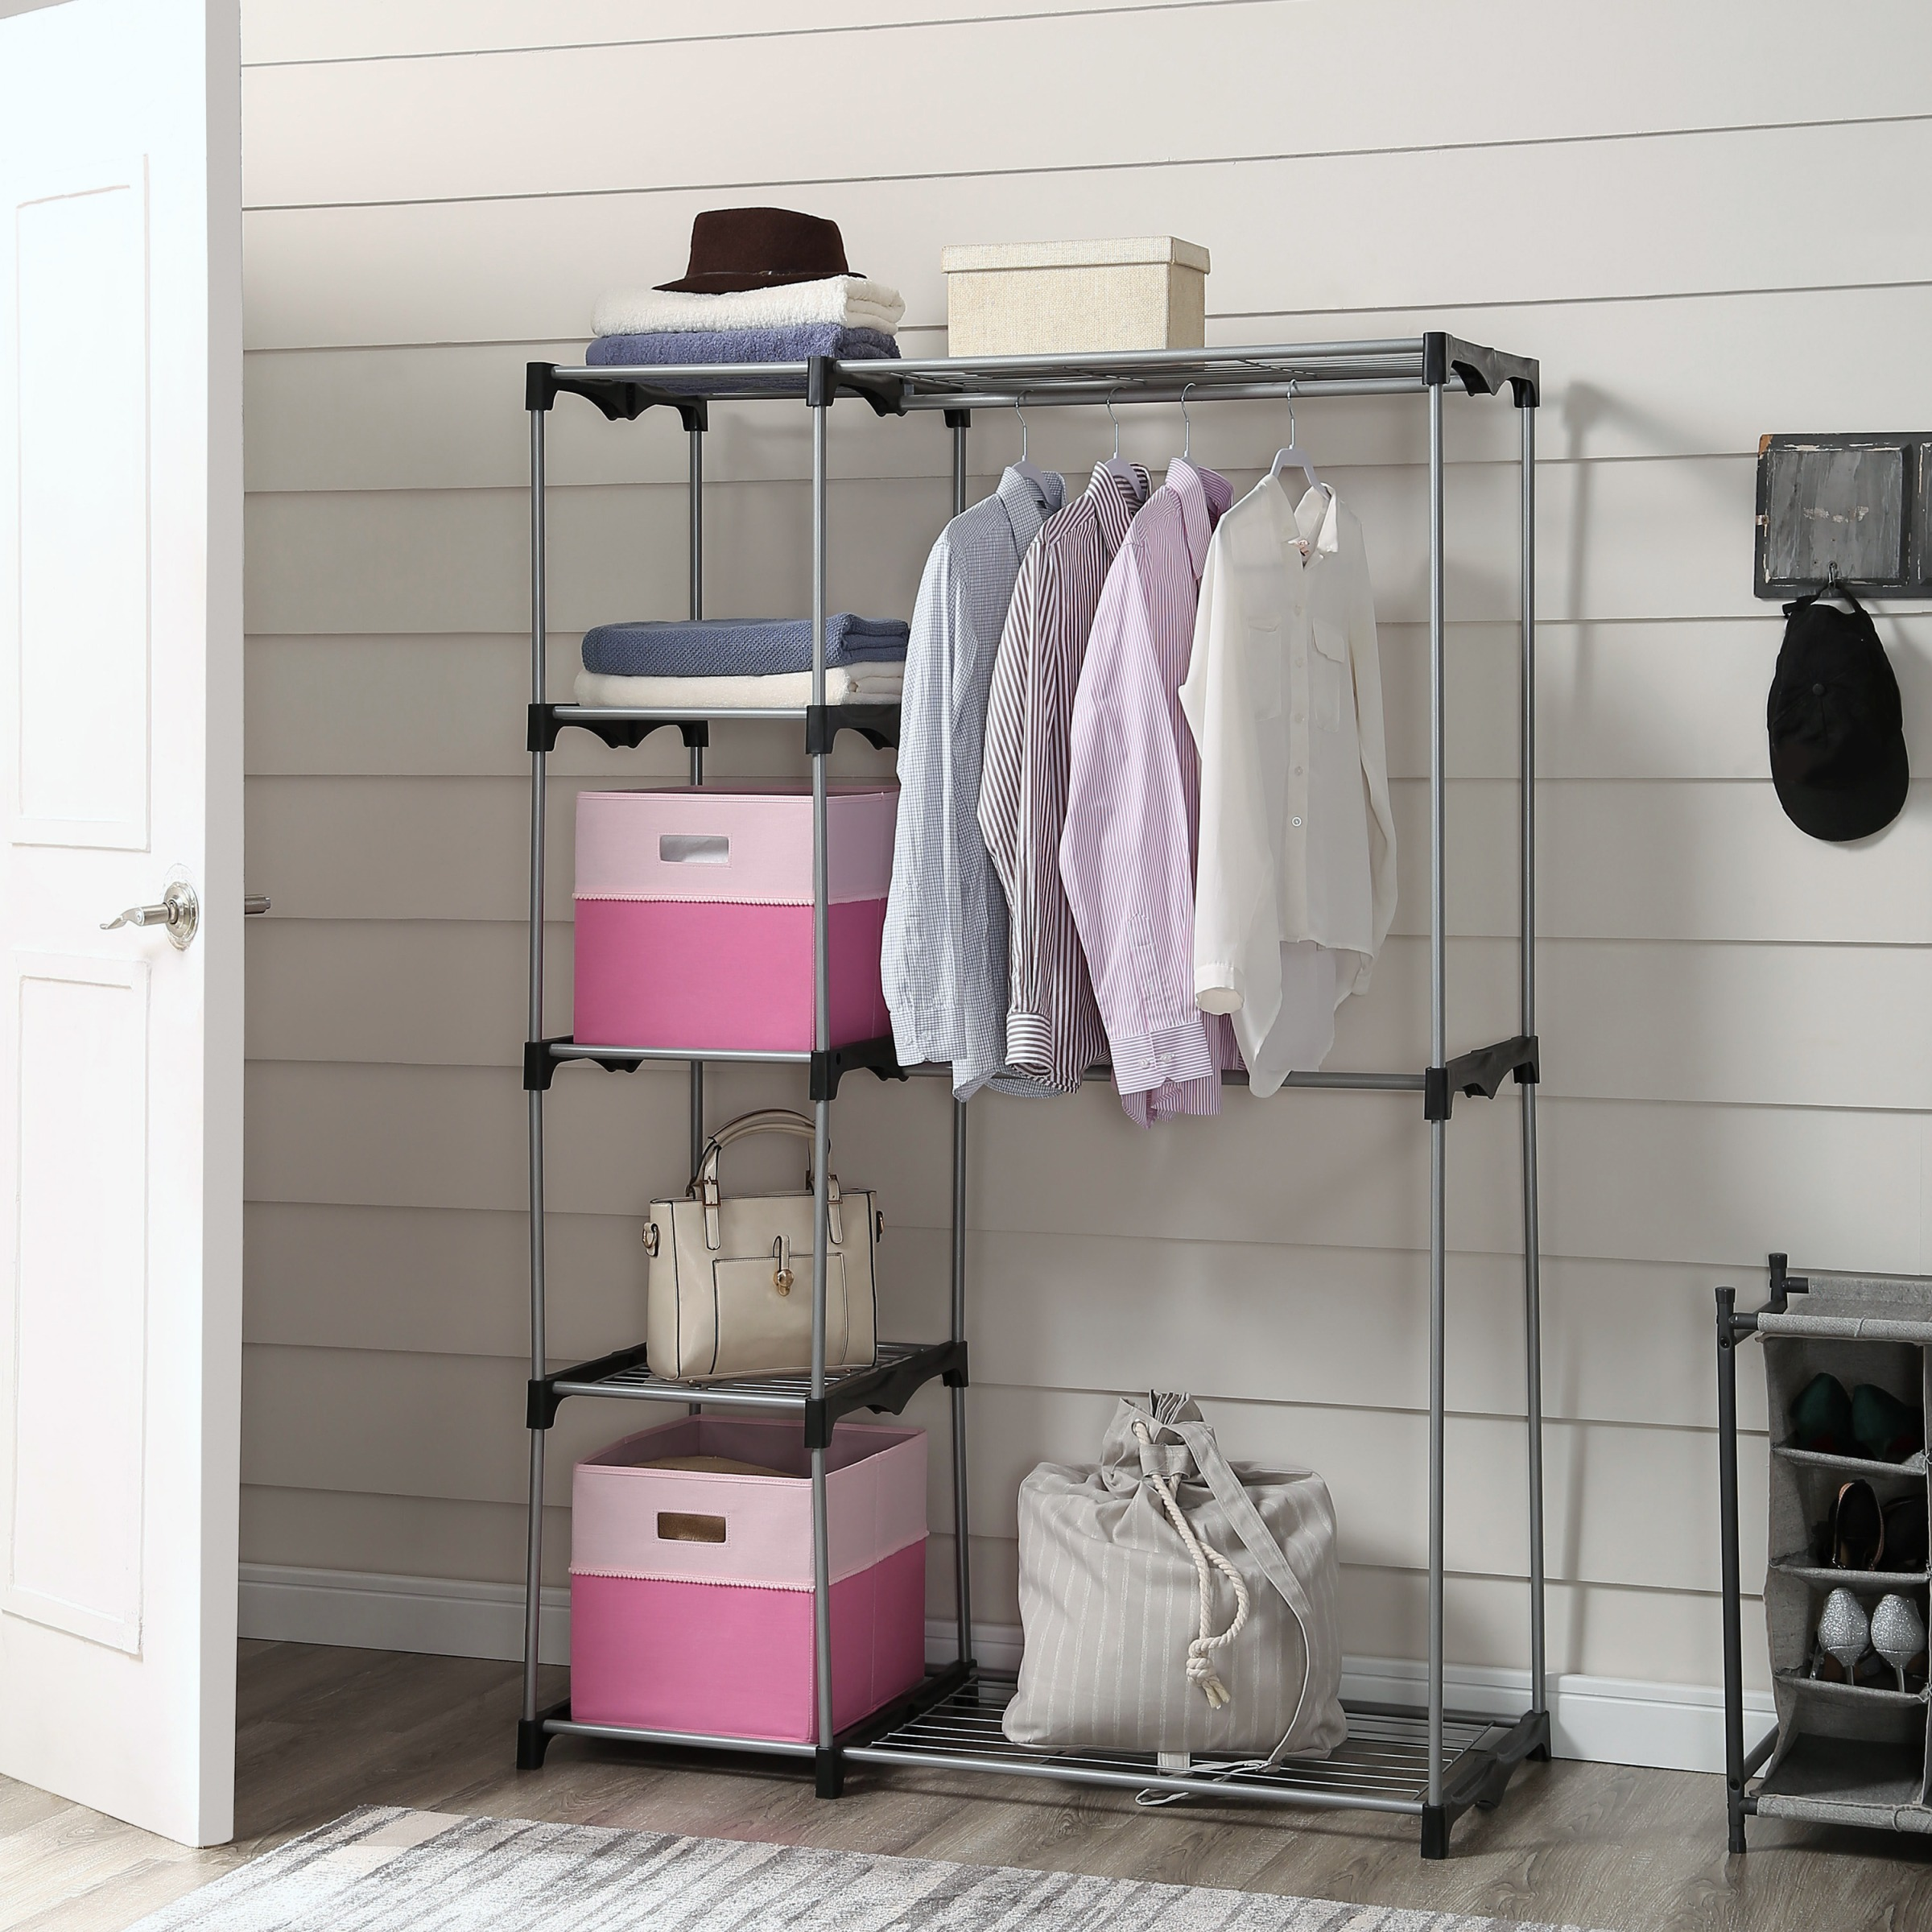 Ordinaire Mainstays Wire Shelf Closet Organizer, 2 Tier, Easy To Assemble